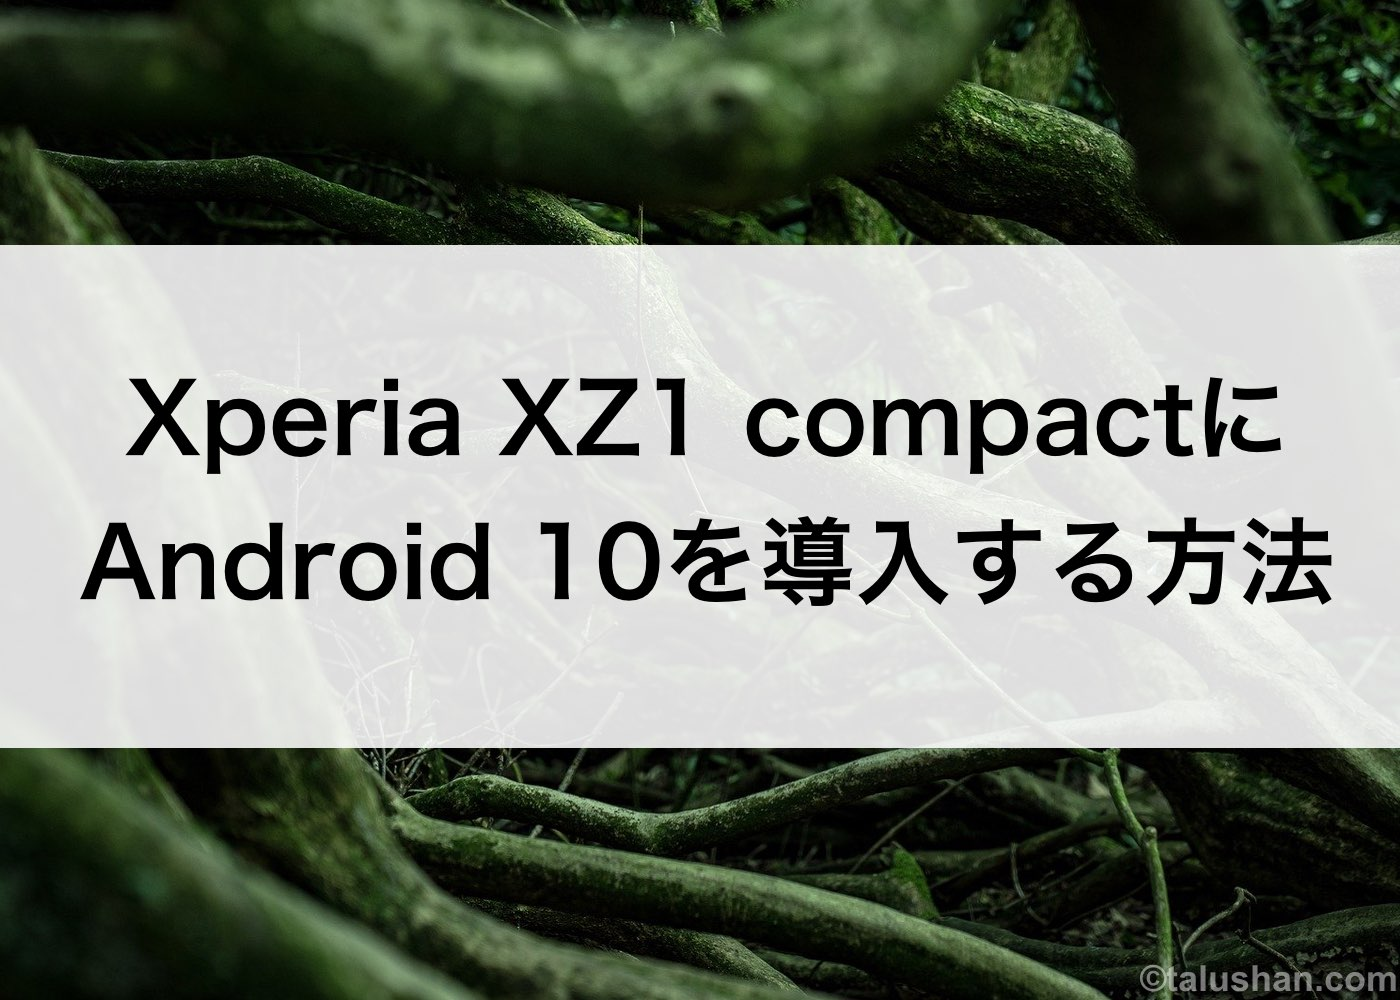 Xperia XZ1 compactにAndroid 10を導入する方法